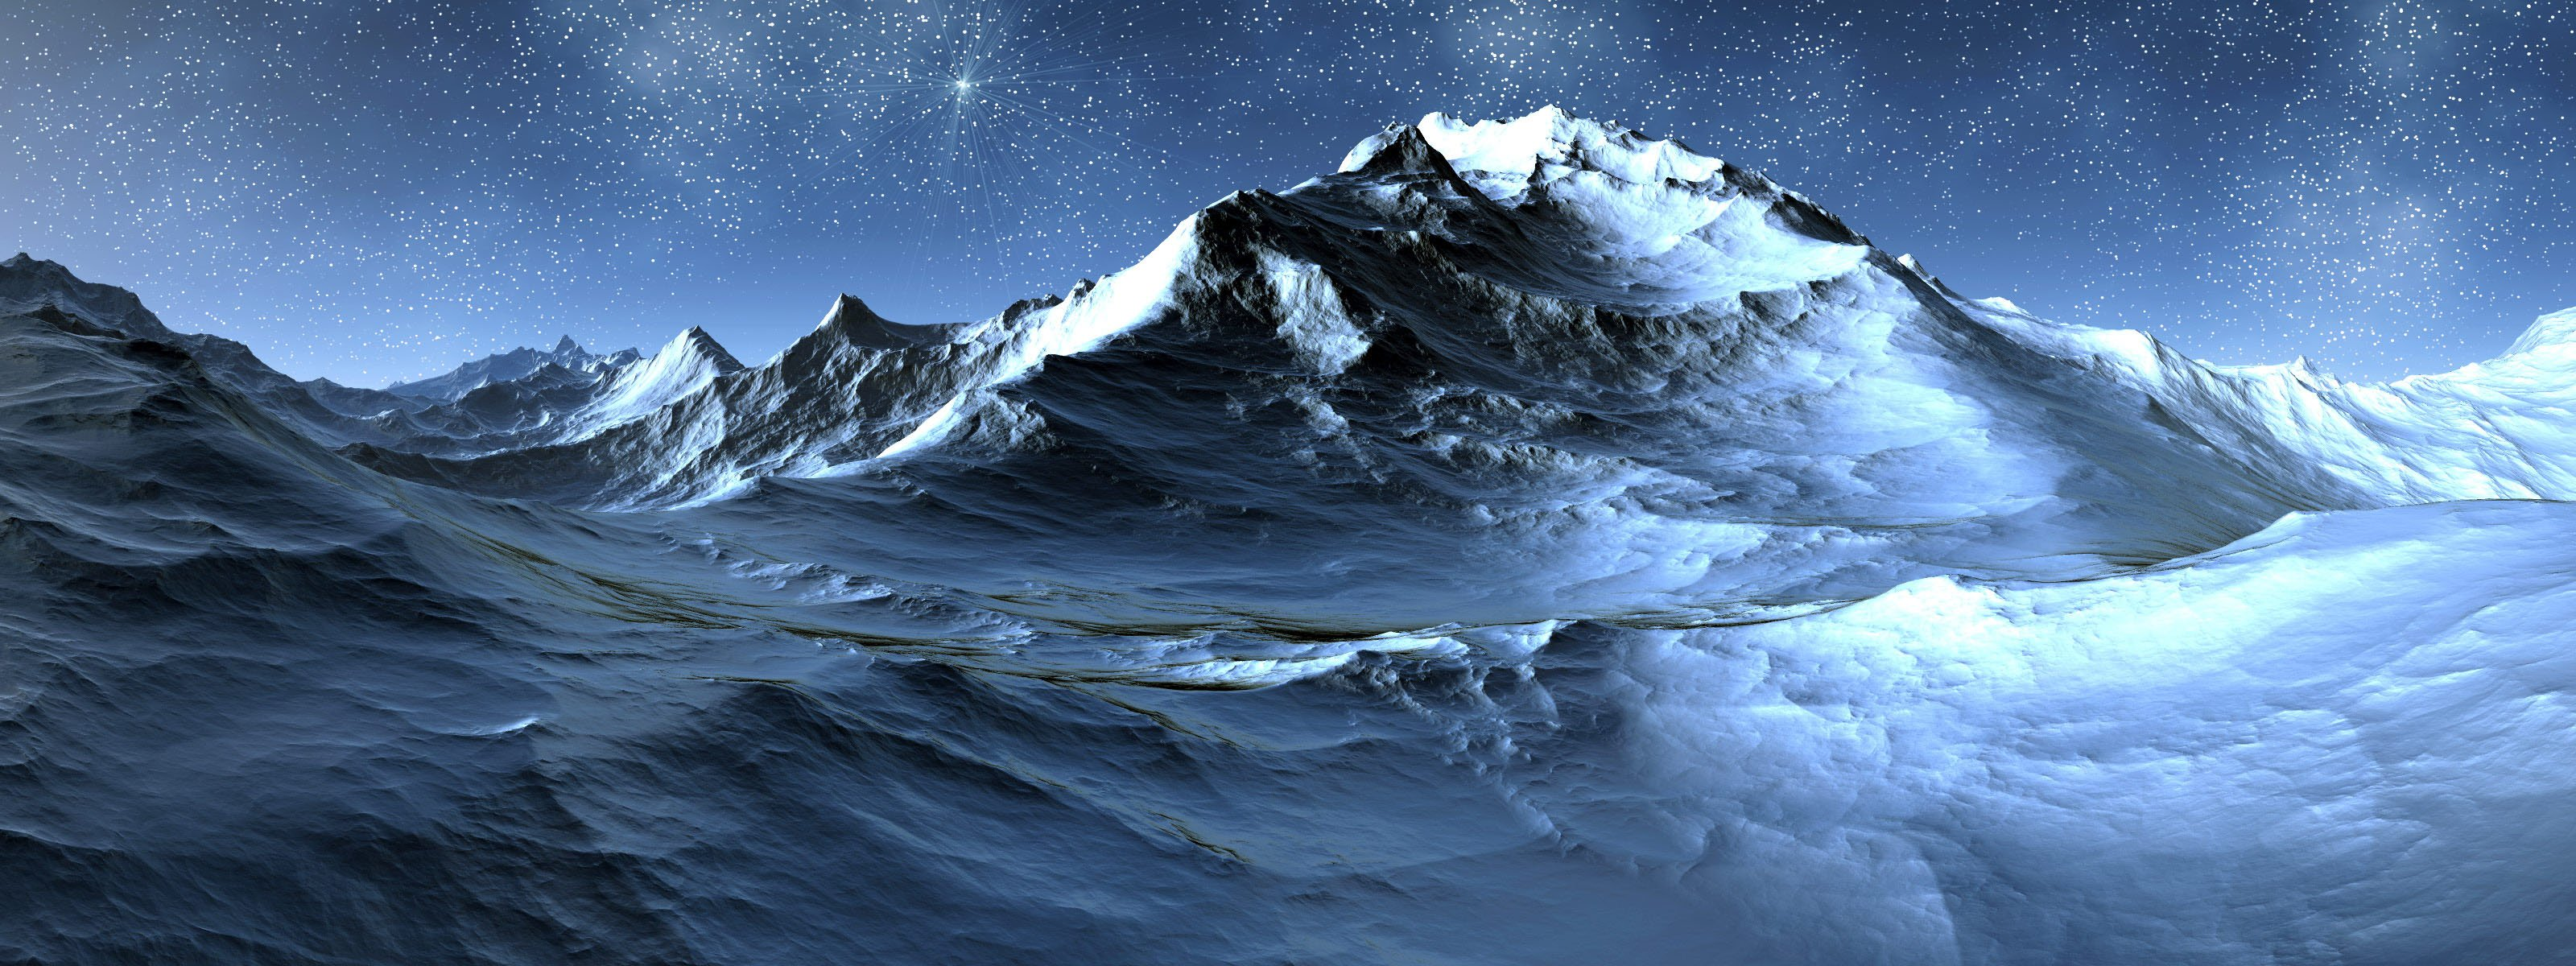 3D Landscape 20   Dual Screen Photography Desktop Wallpapers 7811 3200x1200